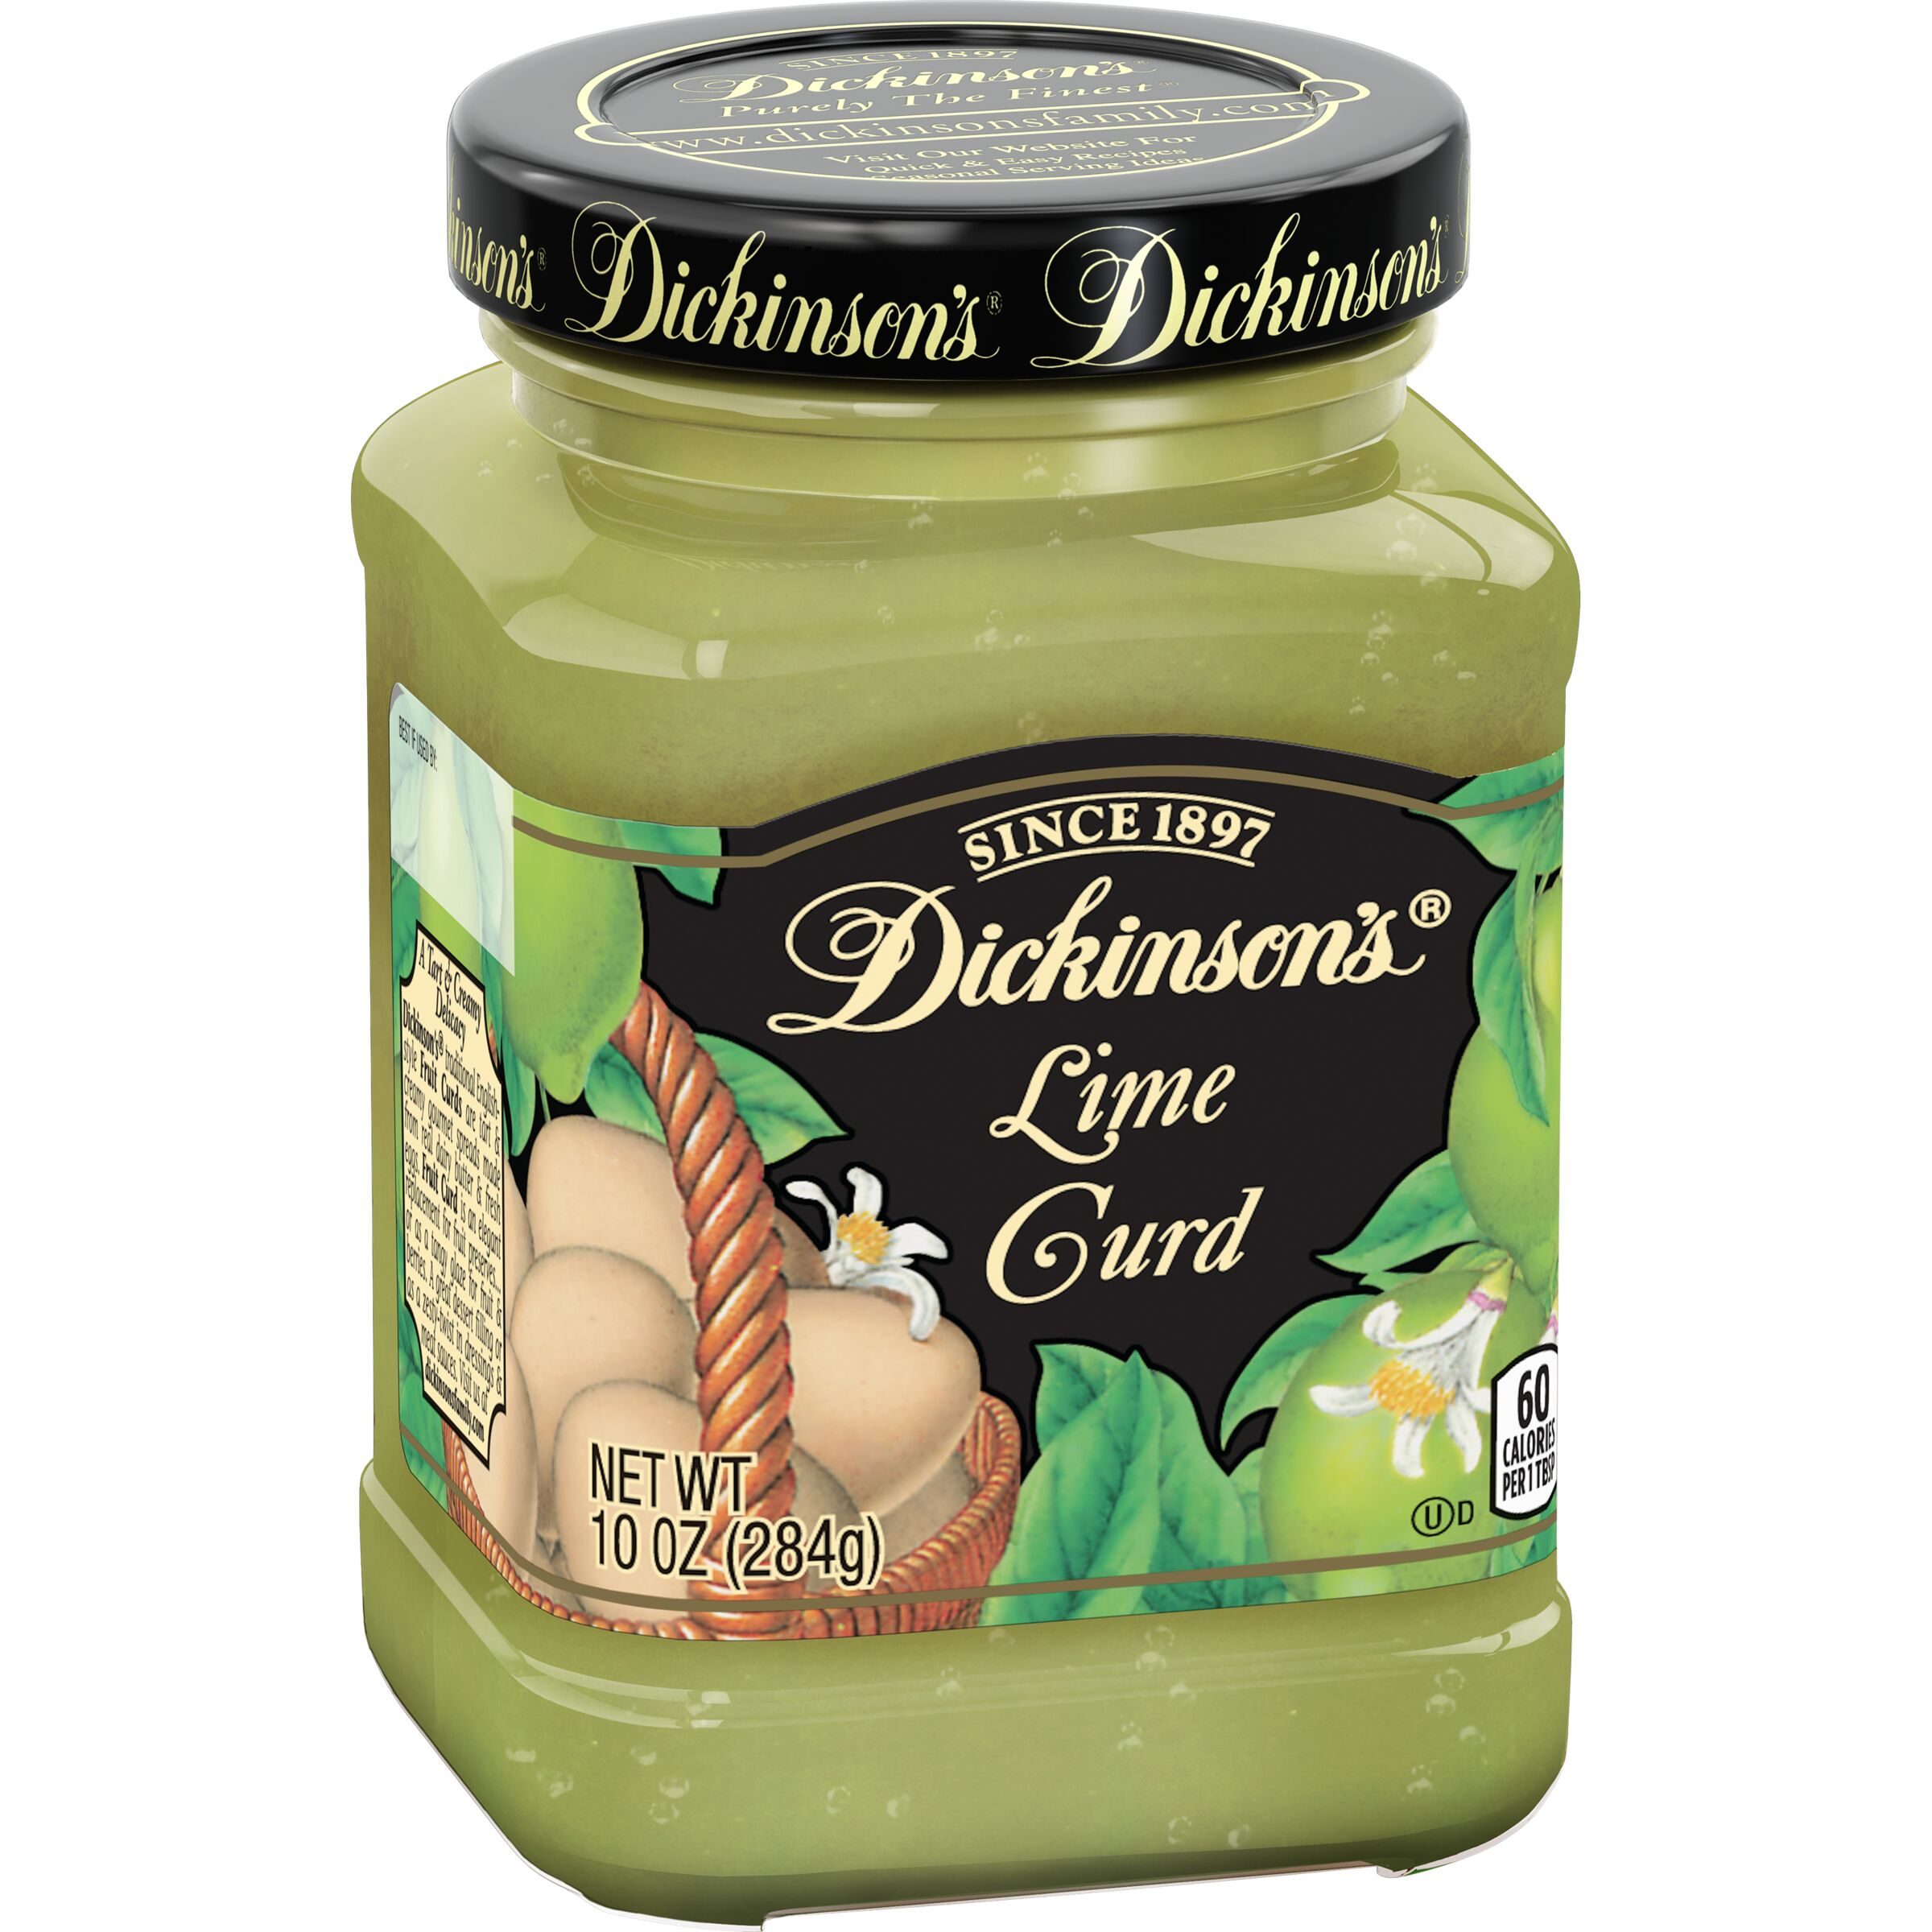 Dickinson's  Lime Curd